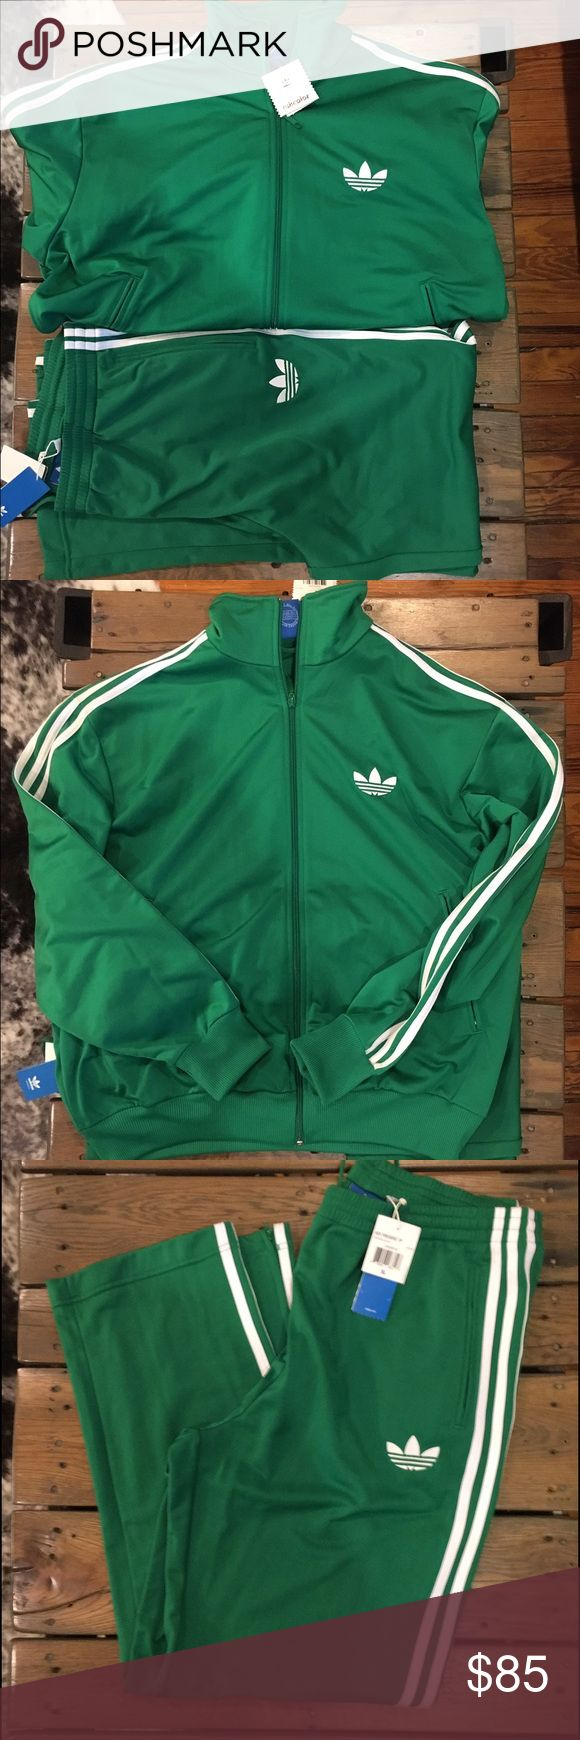 Adidas sweatsuit Brand new Adidas 2 piece sweatsuit. Drawstring and elastic waist. Adicolor collection. Adidas Other